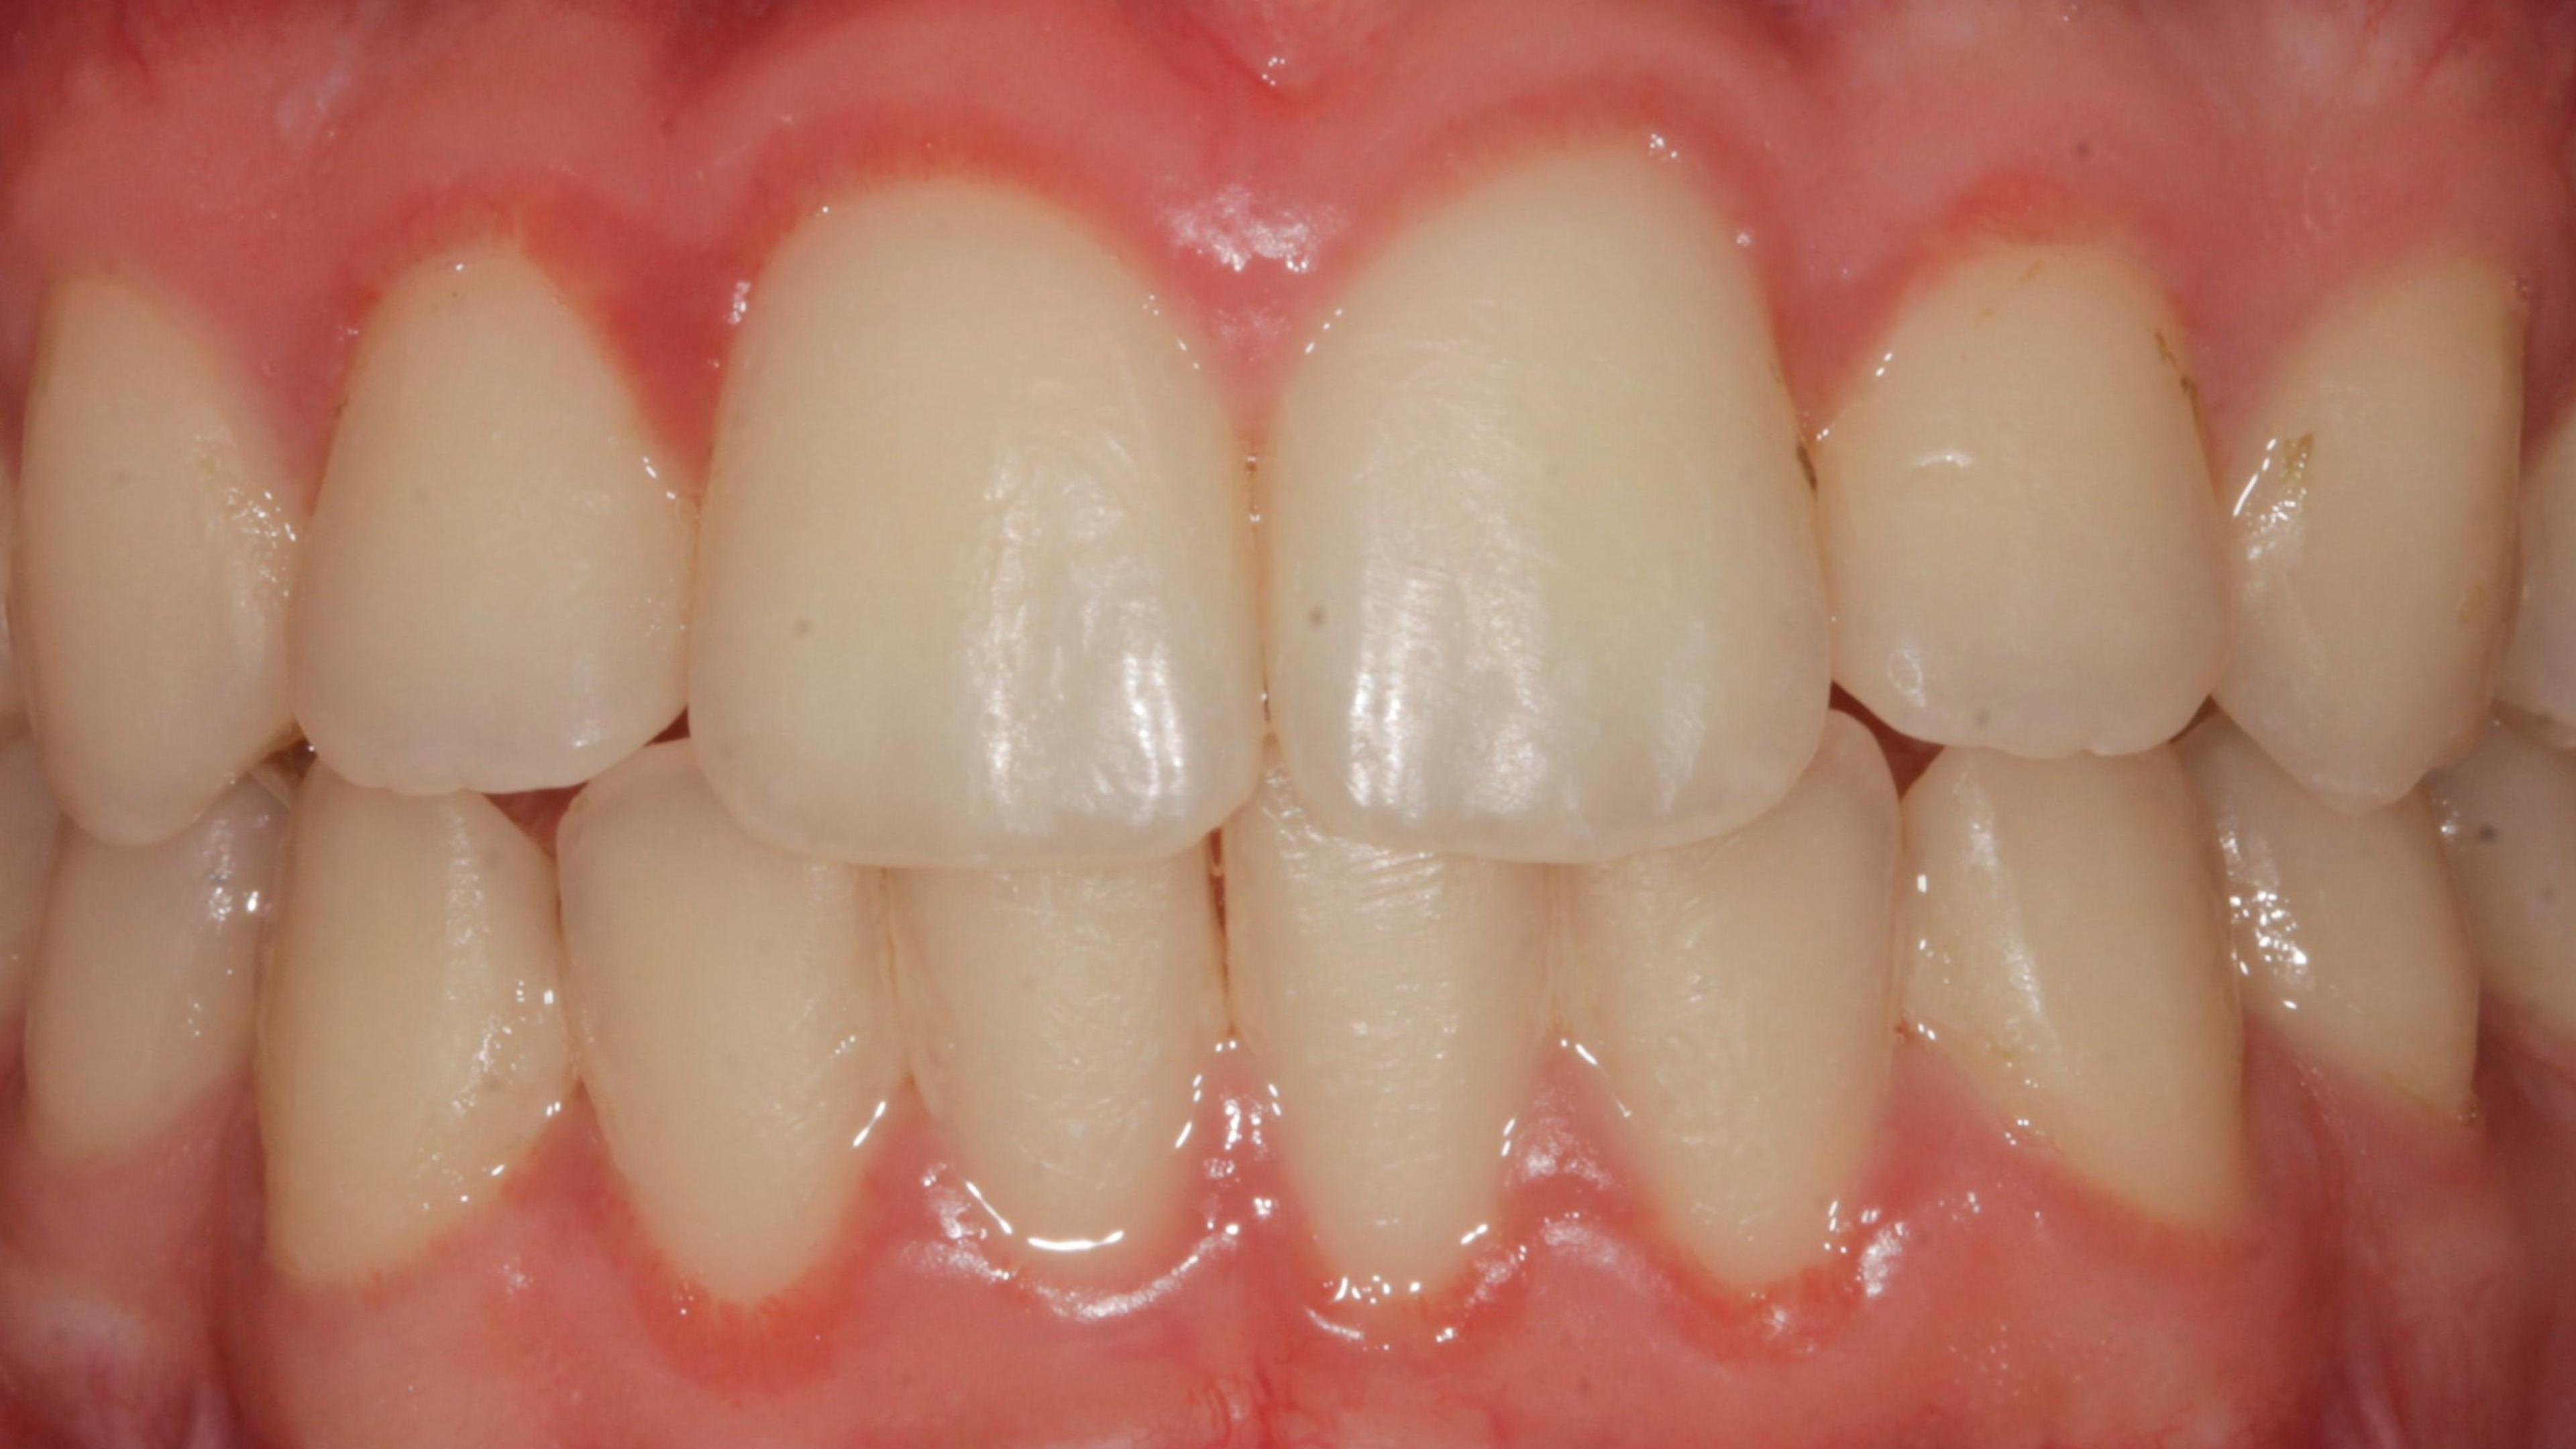 Gingivitis After treatment - Gingivitis